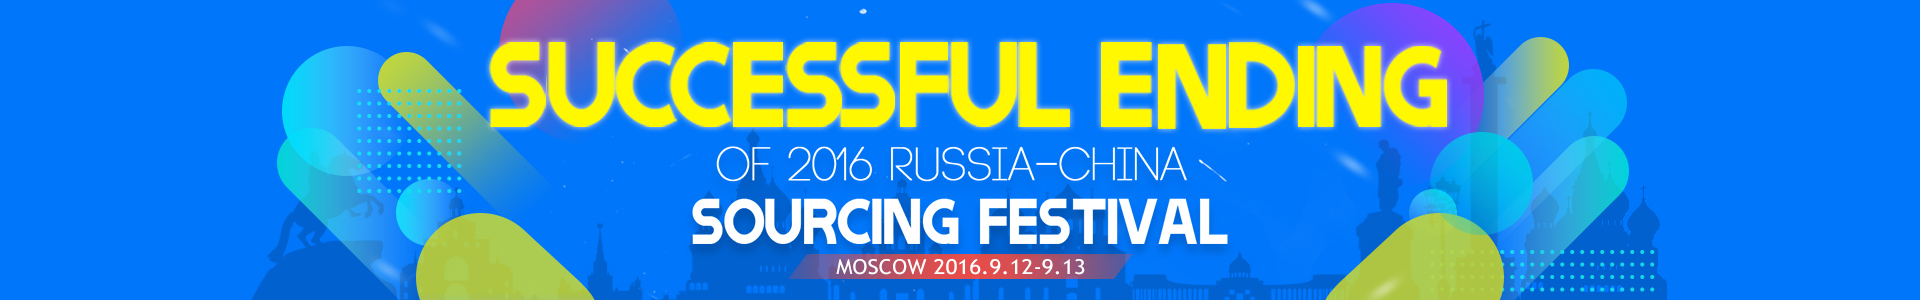 russia-china sourcing festival